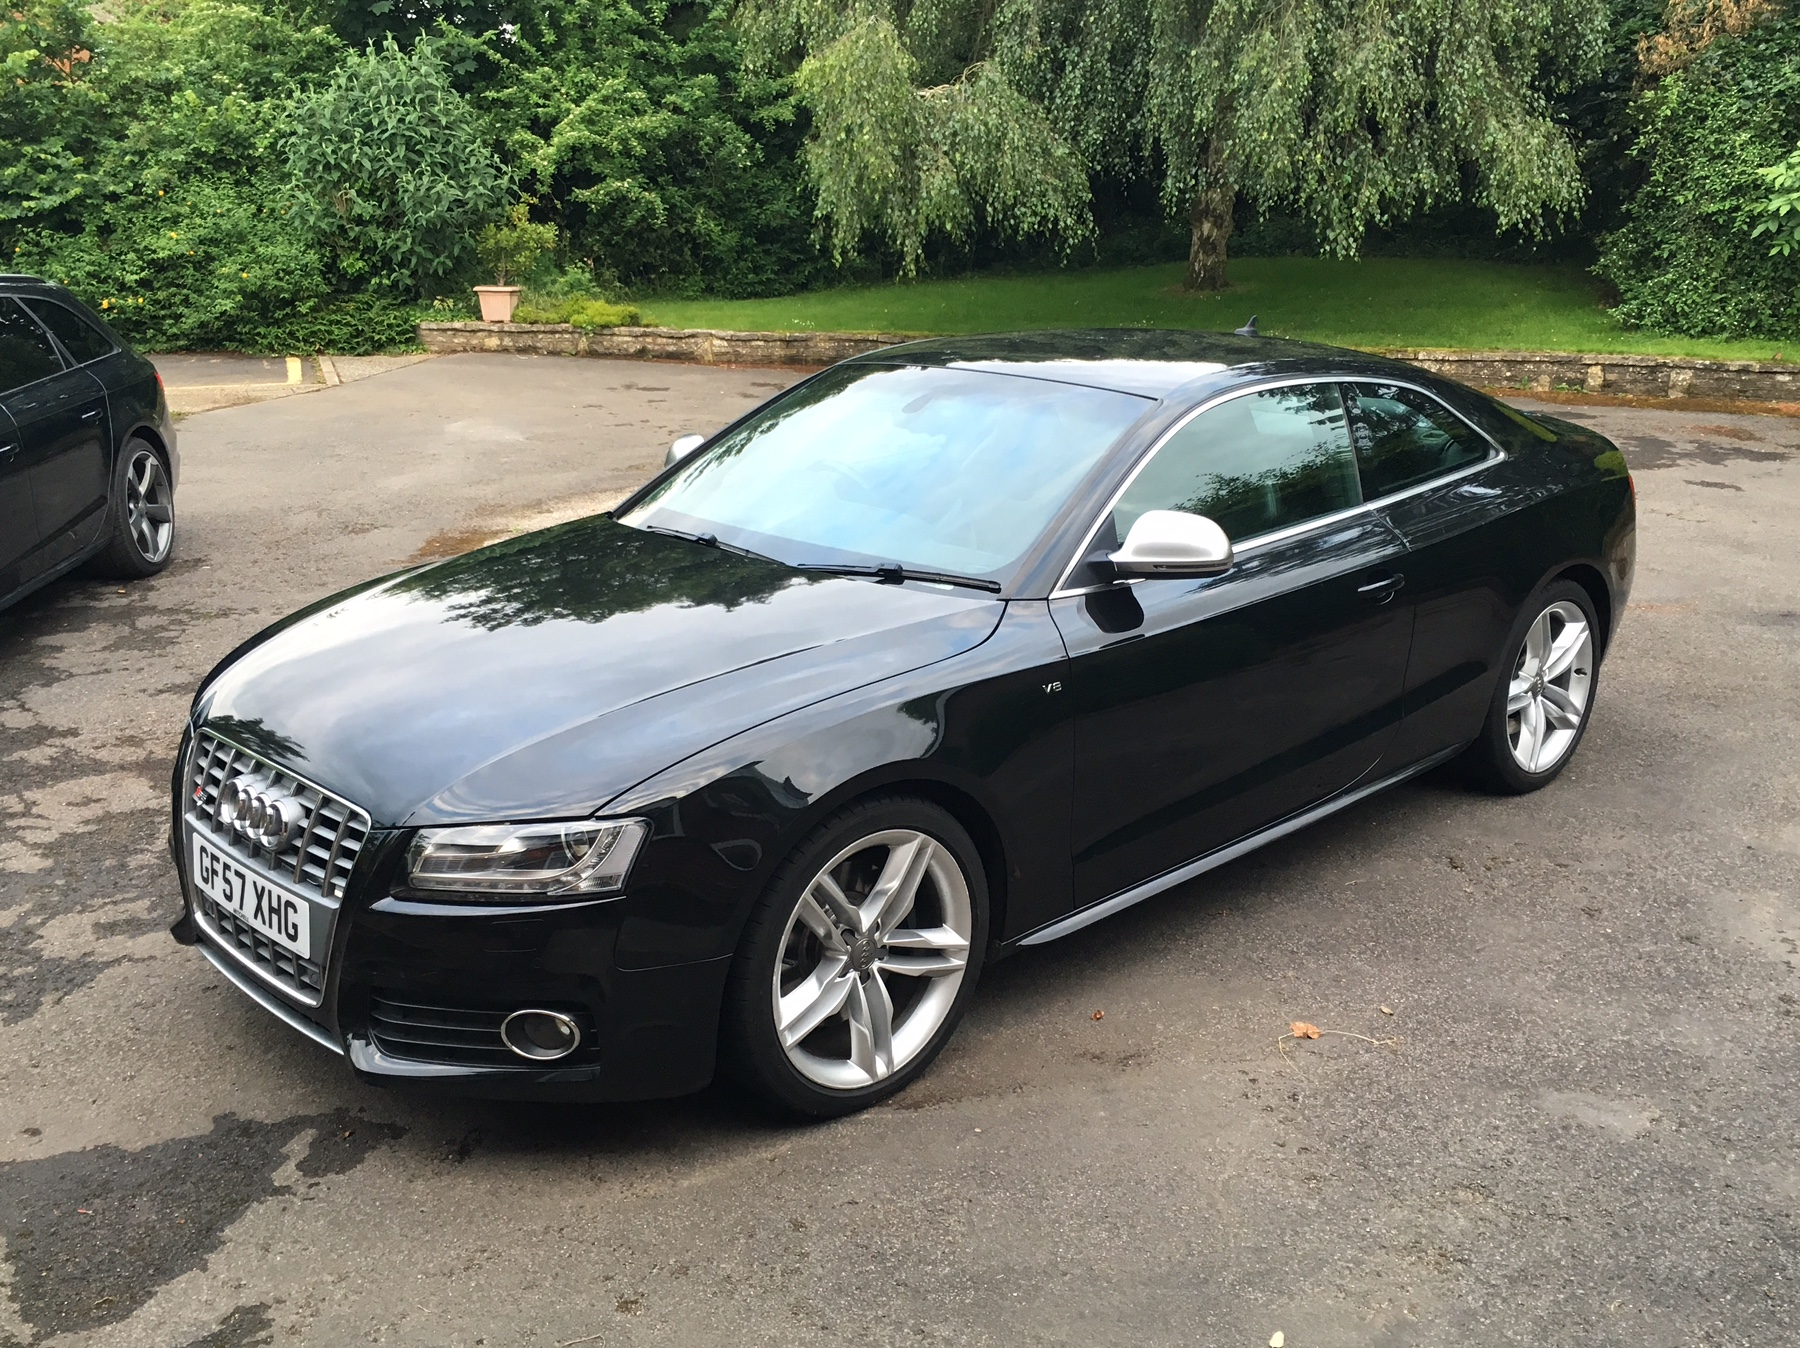 Audi s5 coupe wikipedia 13